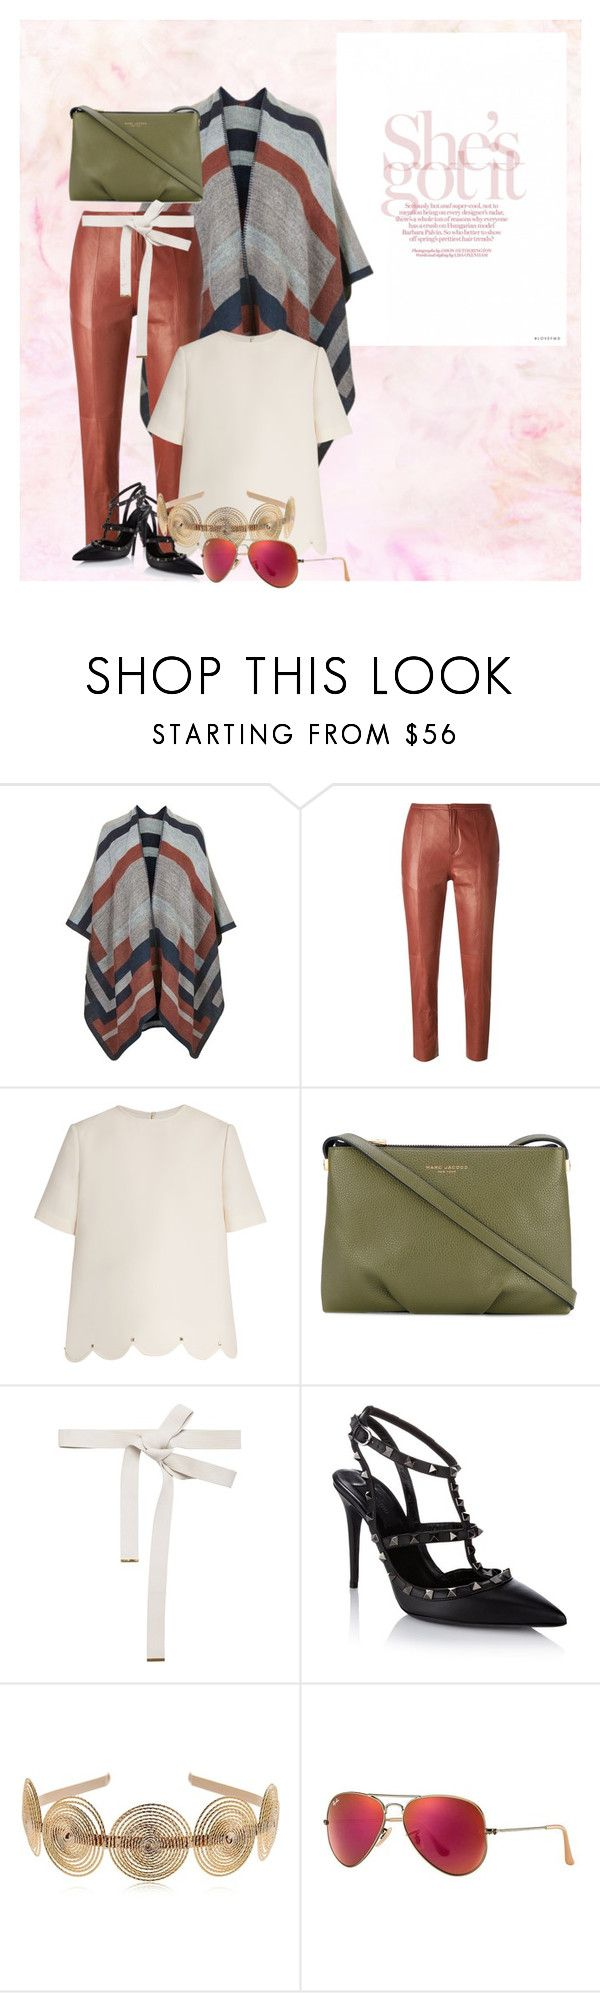 """Untitled #41"" by bebebelabee on Polyvore featuring Topshop, Forte Forte, Valentino, Marc Jacobs, Marni, Rosantica and Ray-Ban"